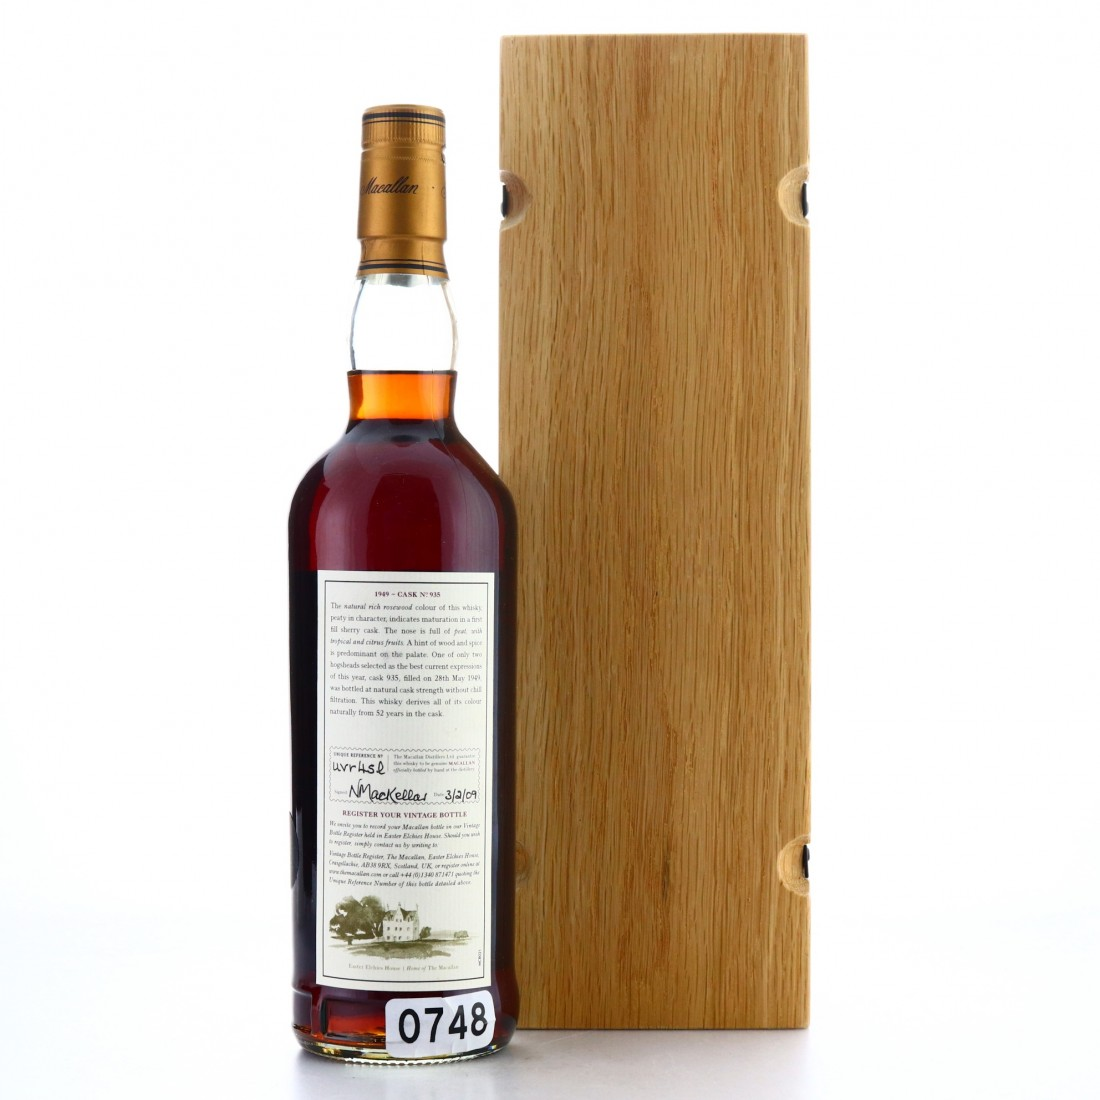 Macallan 1949 Fine and Rare 52 Year Old #935